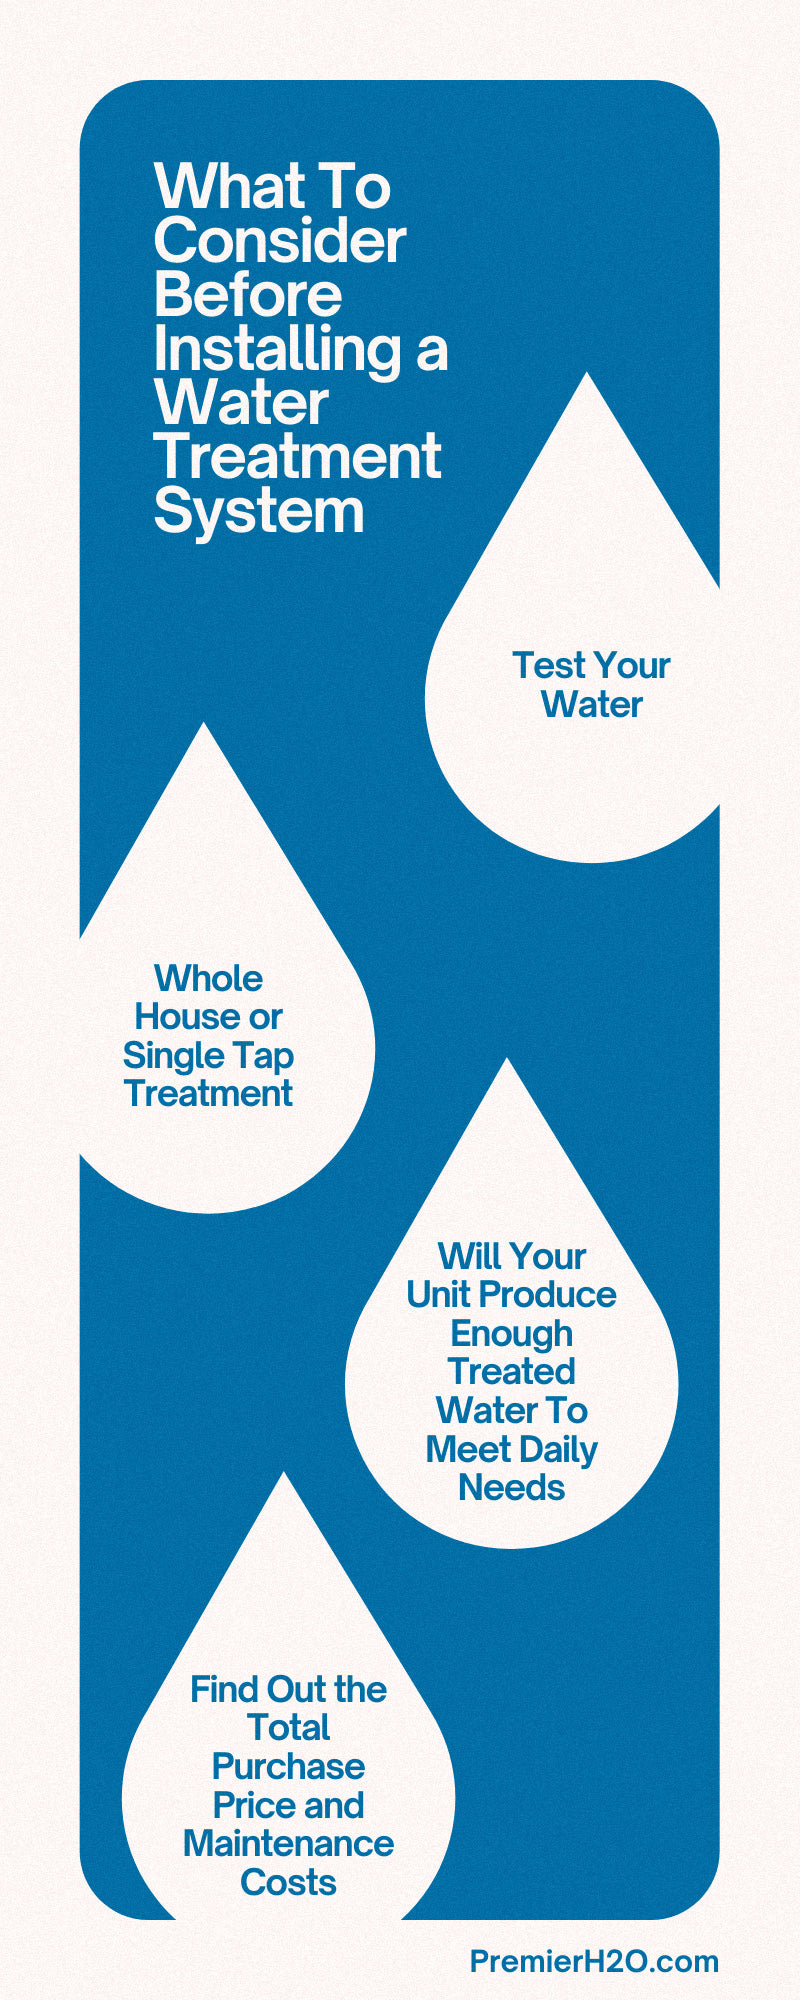 What To Consider Before Installing a Water Treatment System